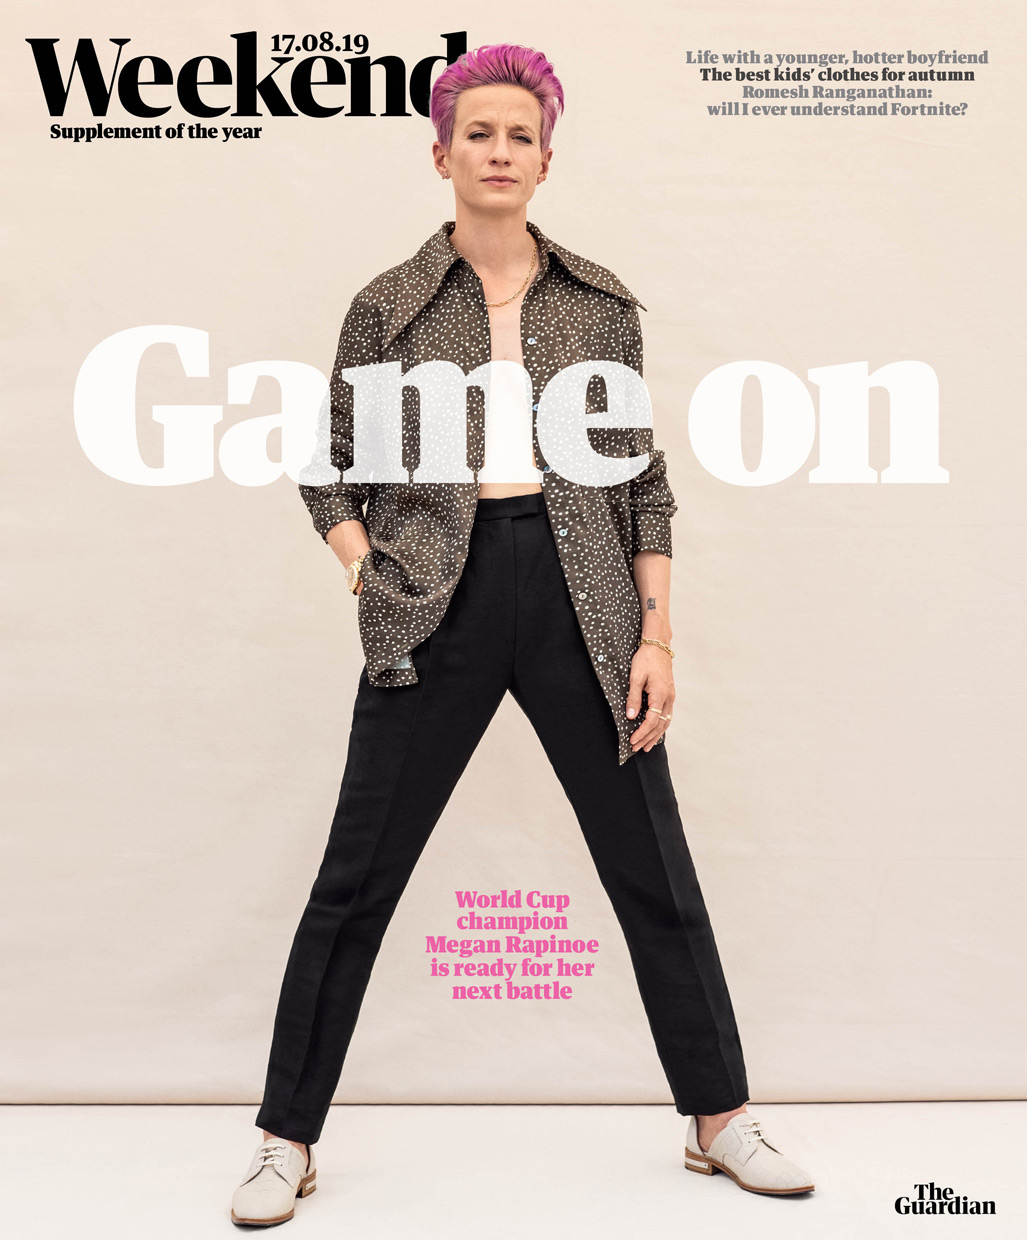 Megan Rapinoe. The Guardian.